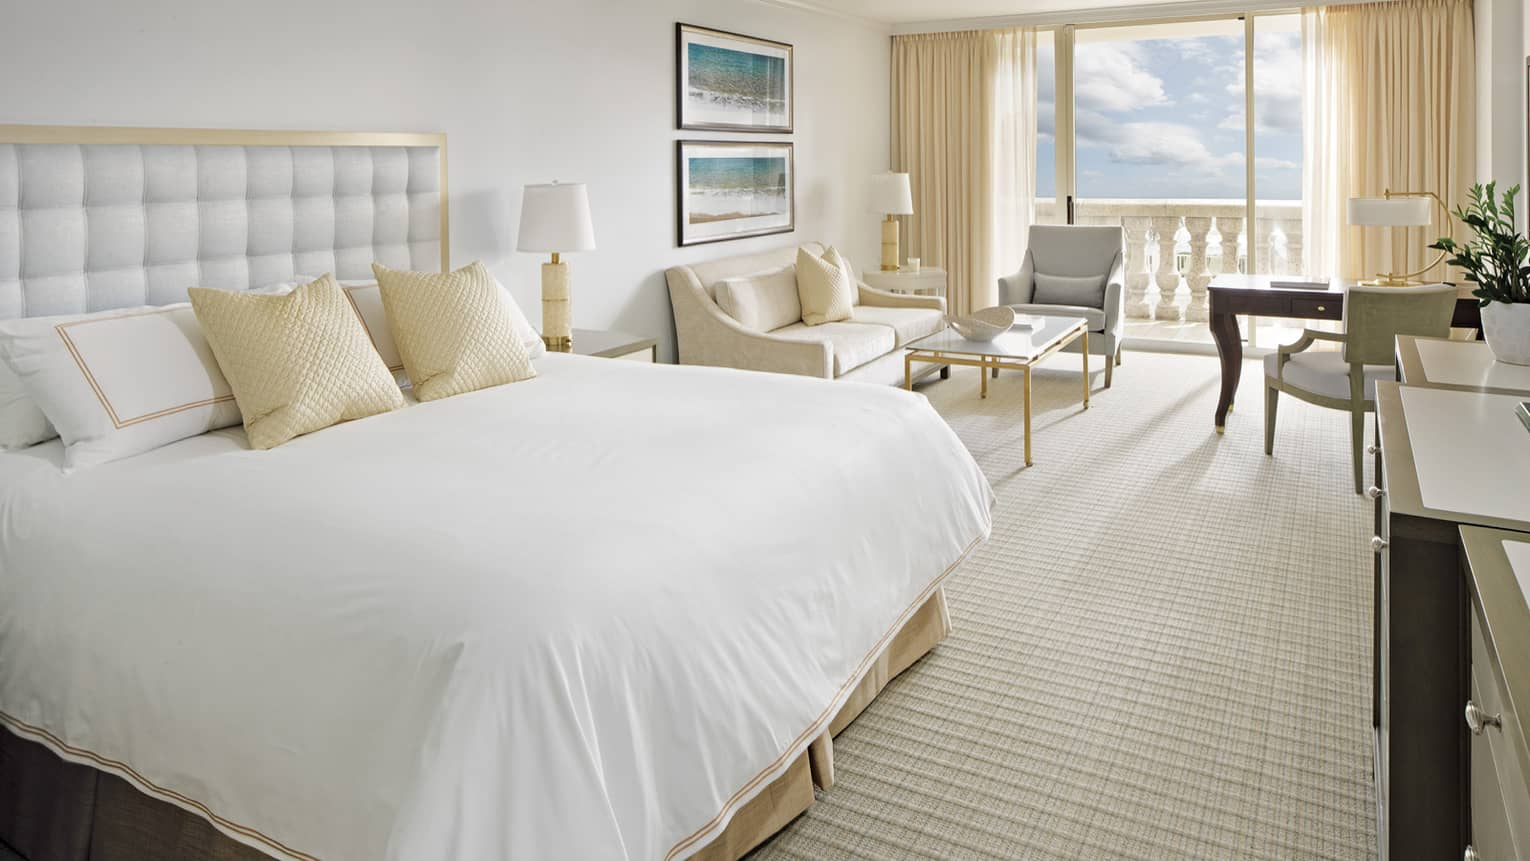 Premier Ocean View Suite bed with white padded headboard, gold pillows, living area and white pillar balcony